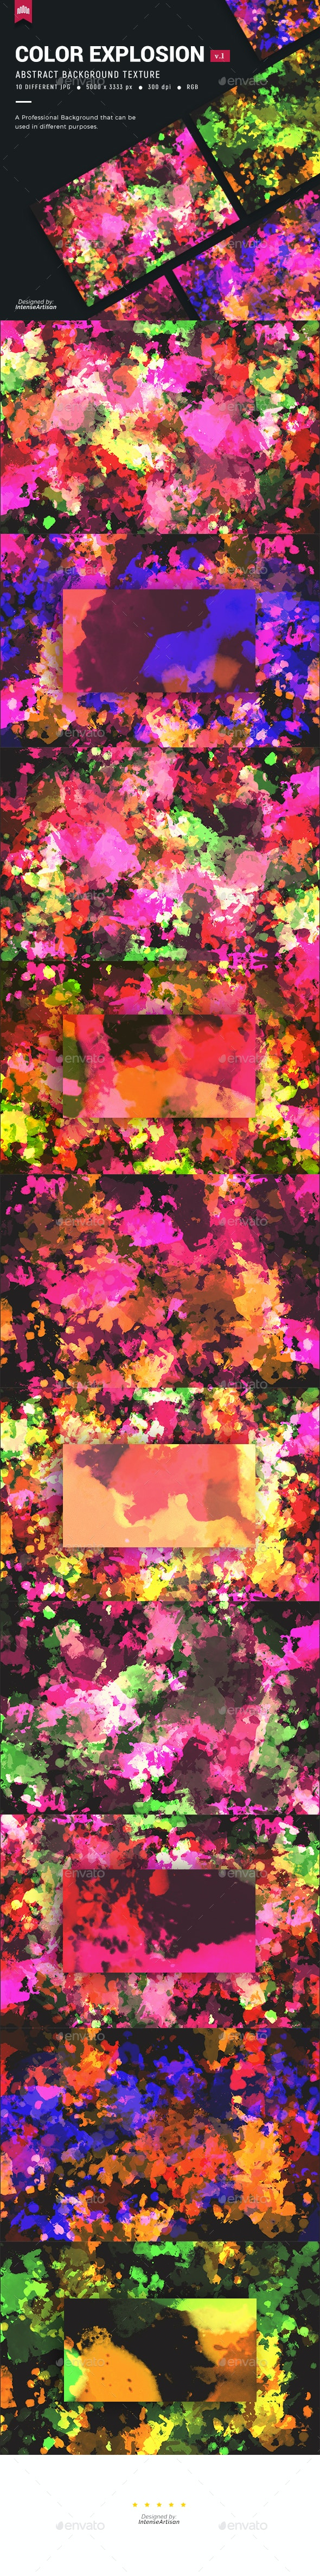 Color Explosion V.1 - Background - Abstract Backgrounds